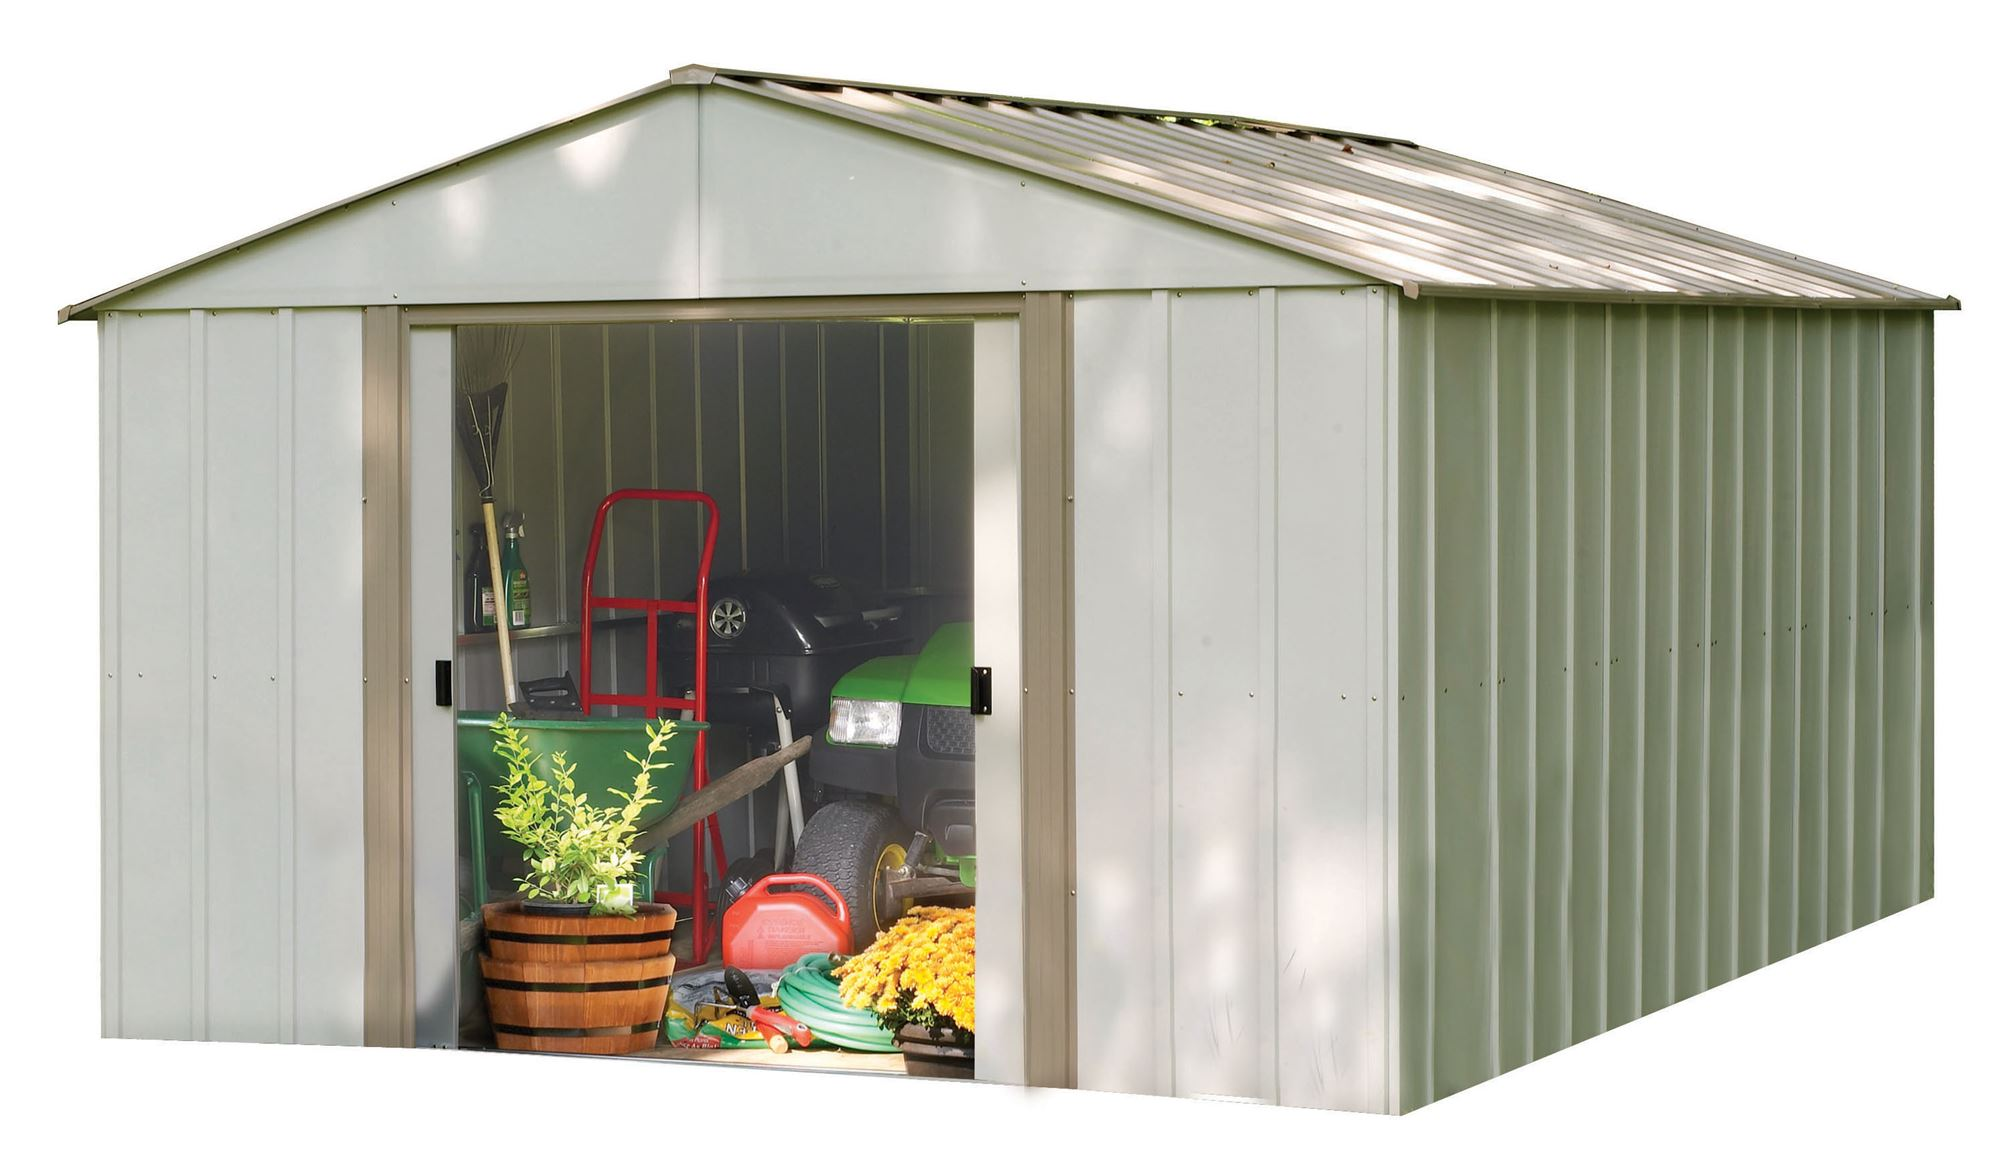 Metal garden shed arrow ob1014 12 m2 for Abri jardin 12m2